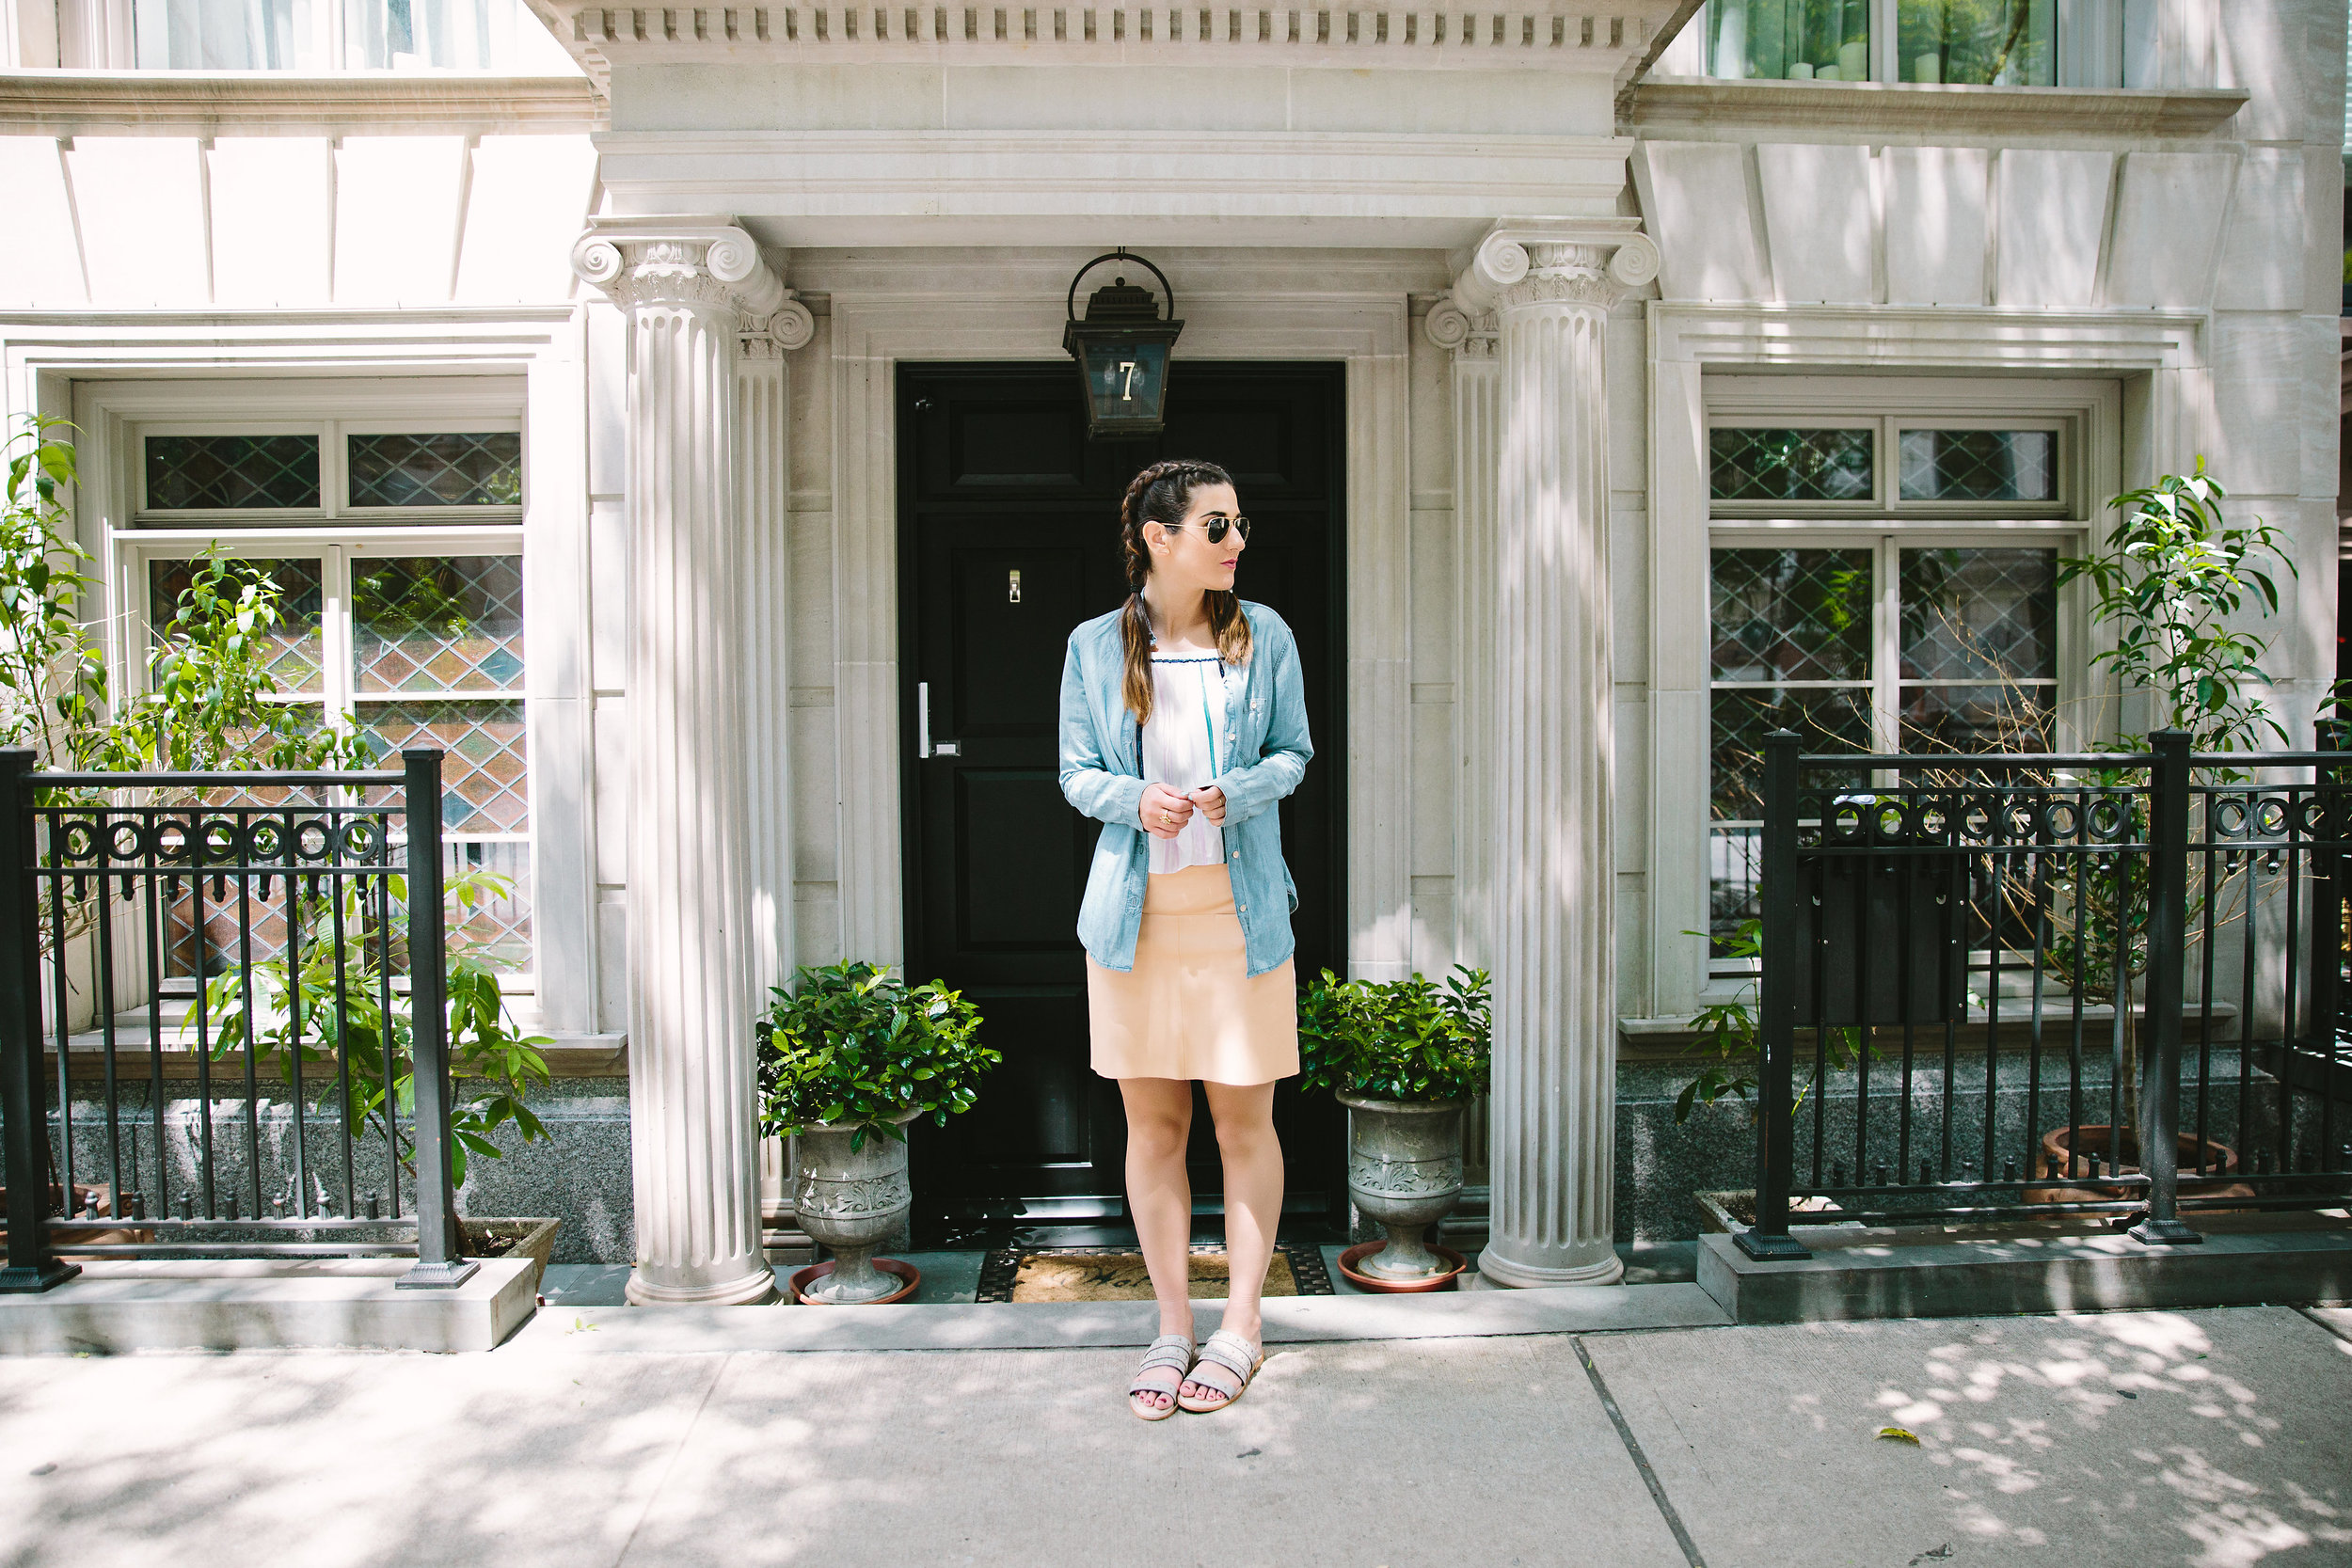 Stripes and Sandals M4D3 Shoes Louboutins & Love Fashion Blog Esther Santer NYC Street Style Blogger OOTD Outfit Shop Sunglasses RayBan Aviators Jean Shirt Pink Pleather Skirt New York City Photoshoot Summer Look Girl Women Pretty Hair Inspo Braids.jpg